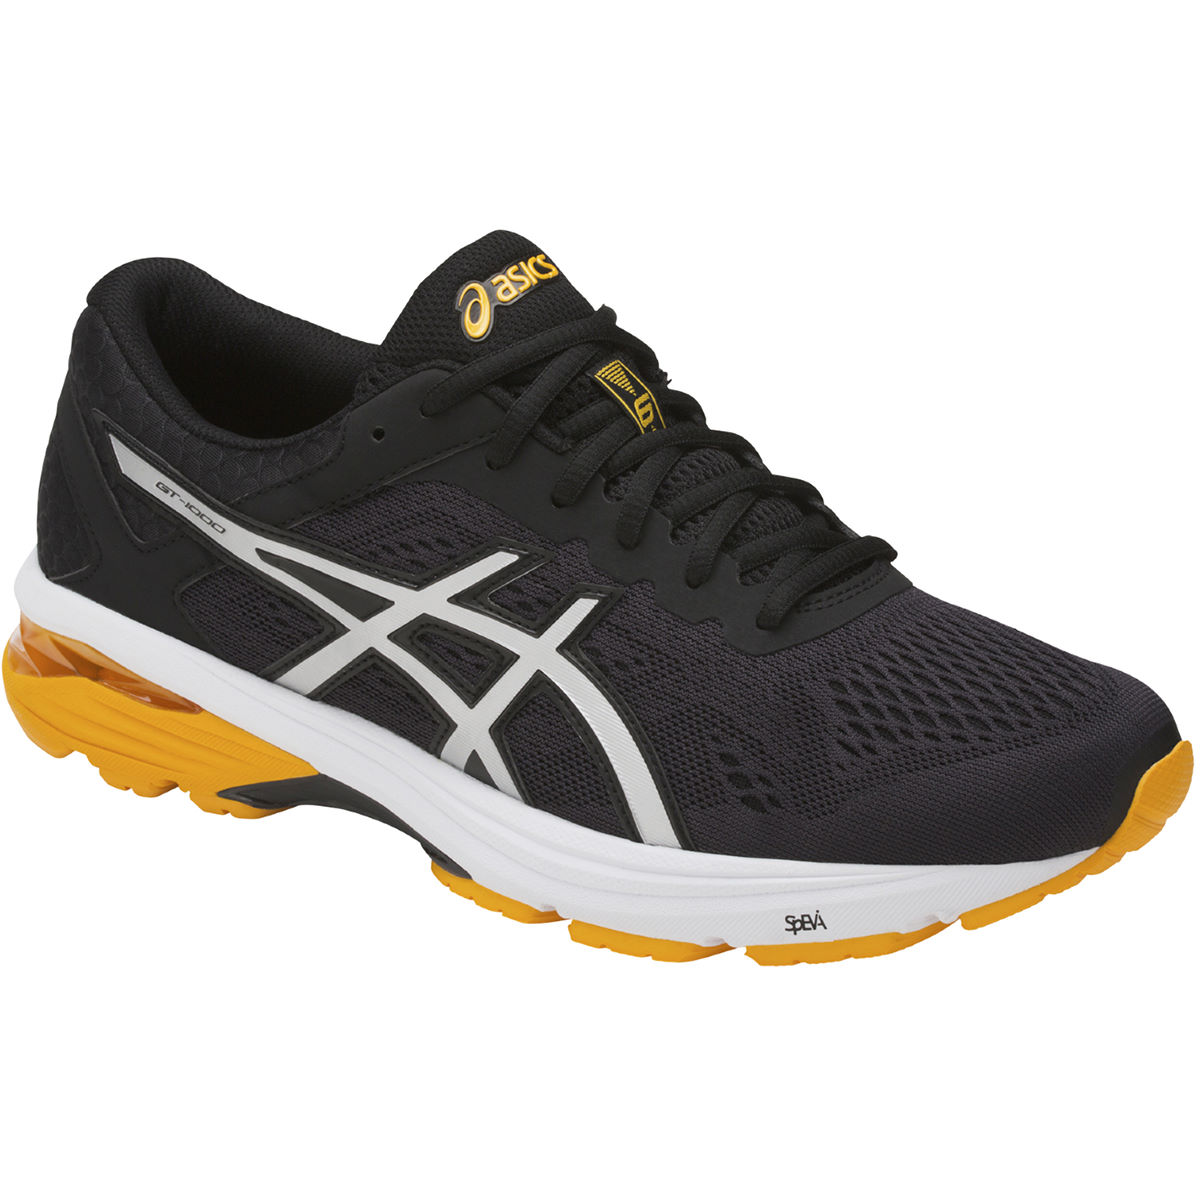 Chaussures Asics GT-1000 6 - UK 11 Black/Silver/Gold Fu